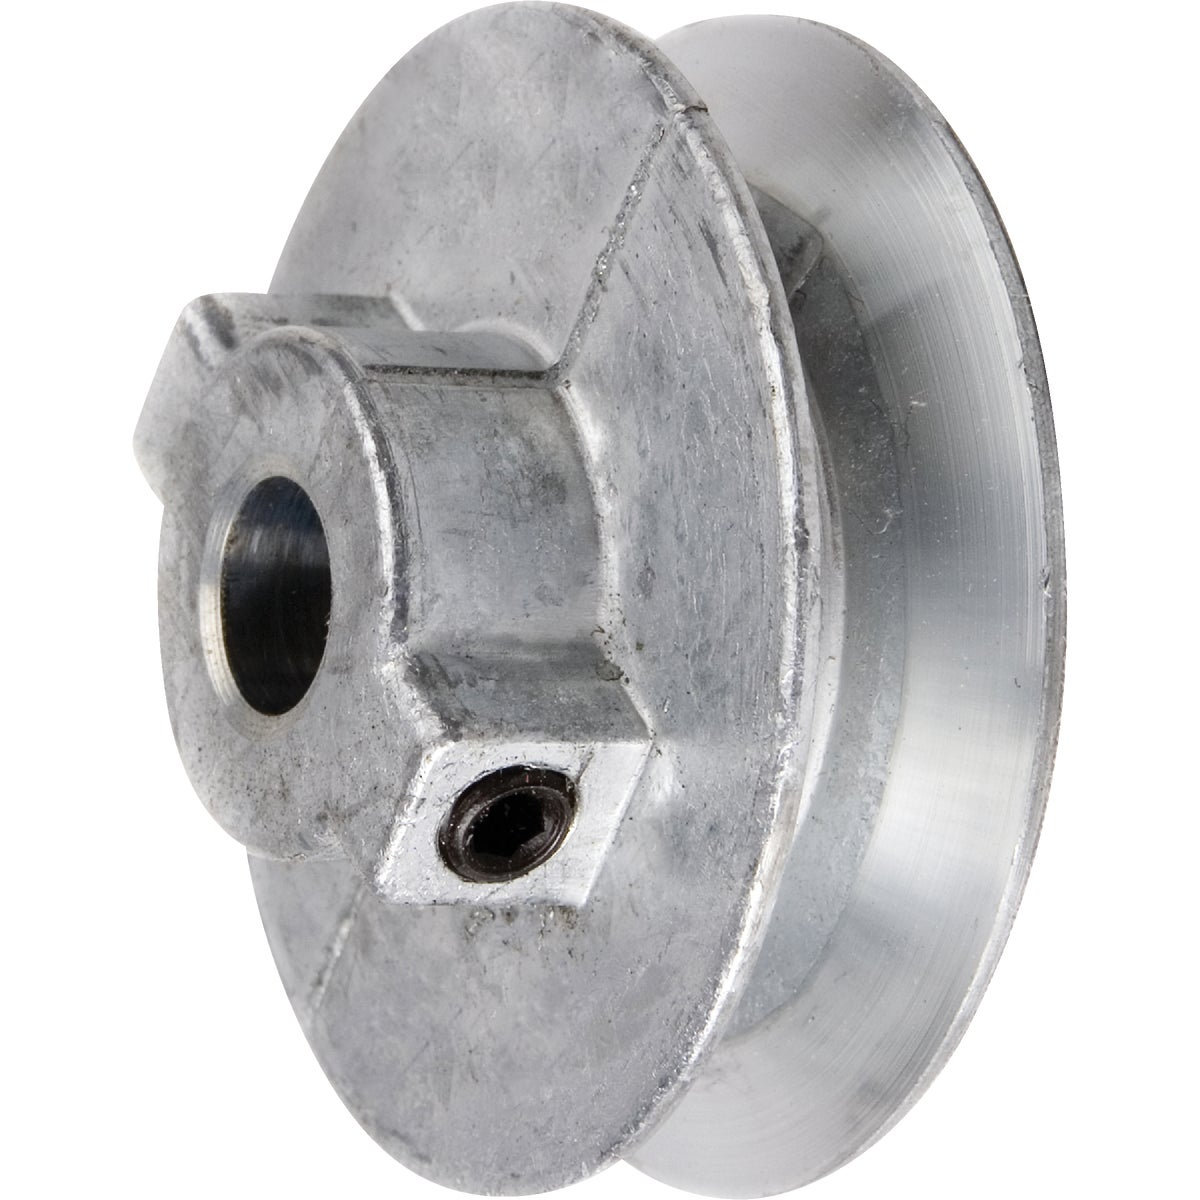 3-1/4X1/2 PULLEY